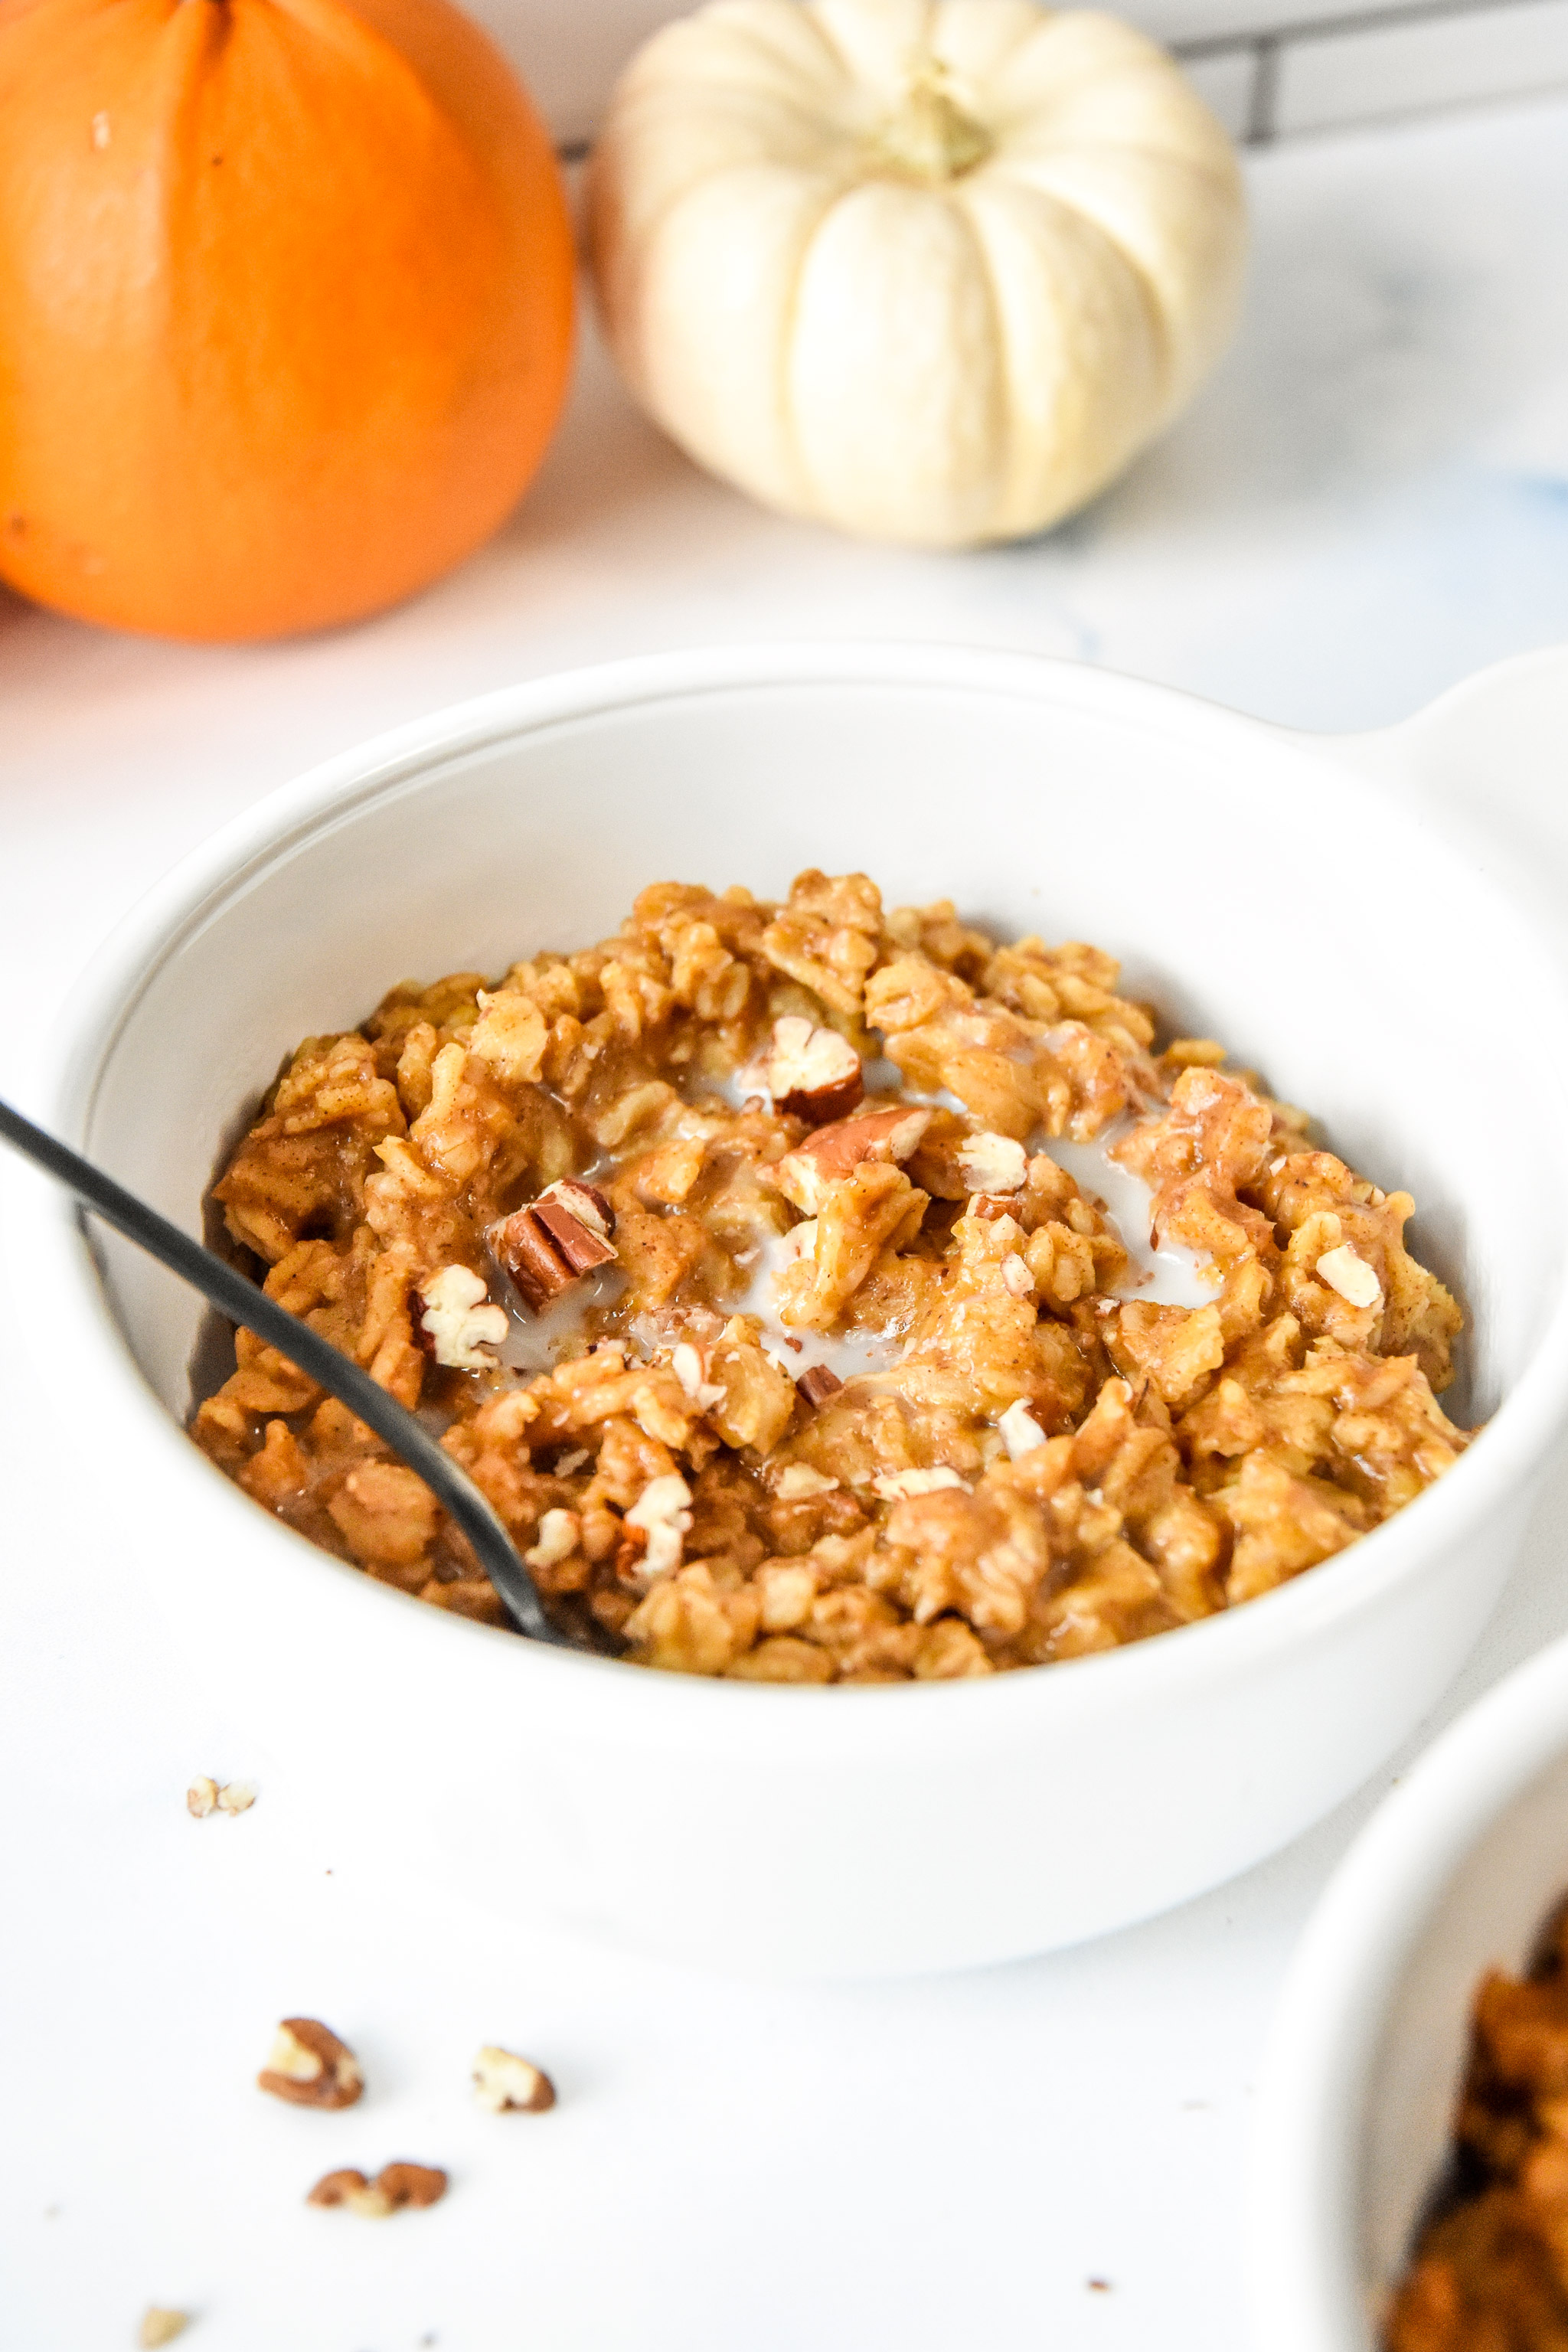 bowl of oatmeal with pecans on top.